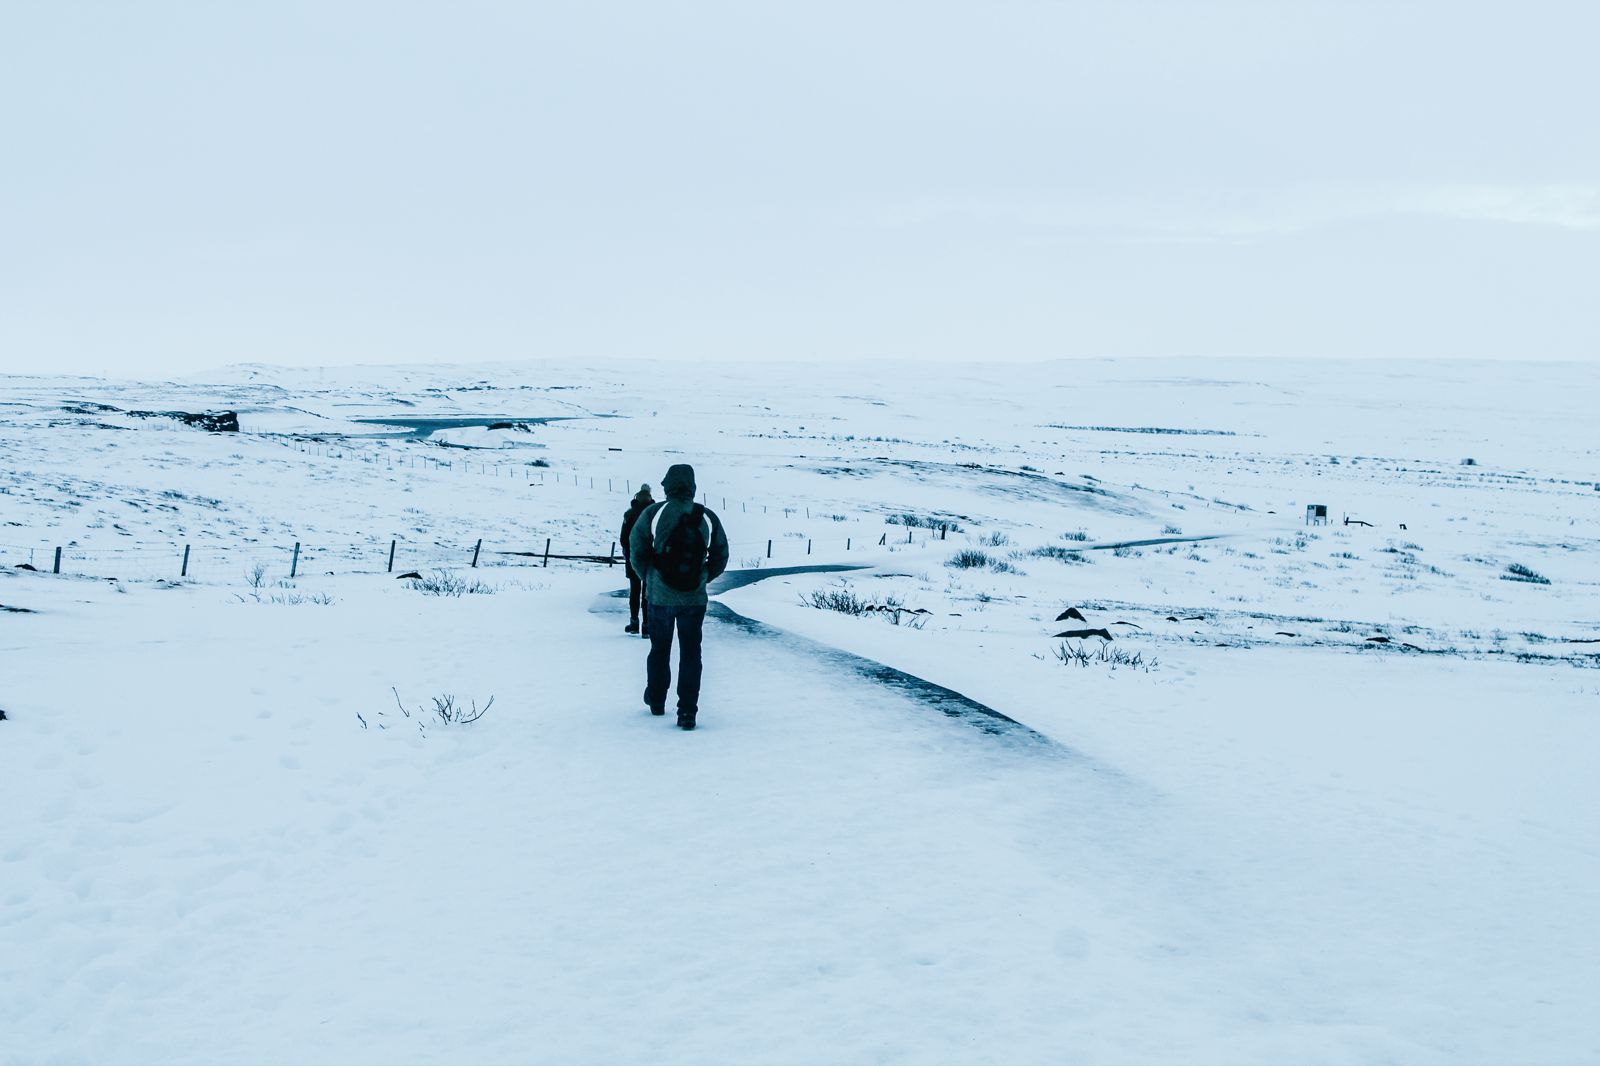 The 1st Day in The Land Of Fire and Ice - Iceland! Lava Baking, Geo-Thermal Pools And The Golden Circle (Part 2) (27)